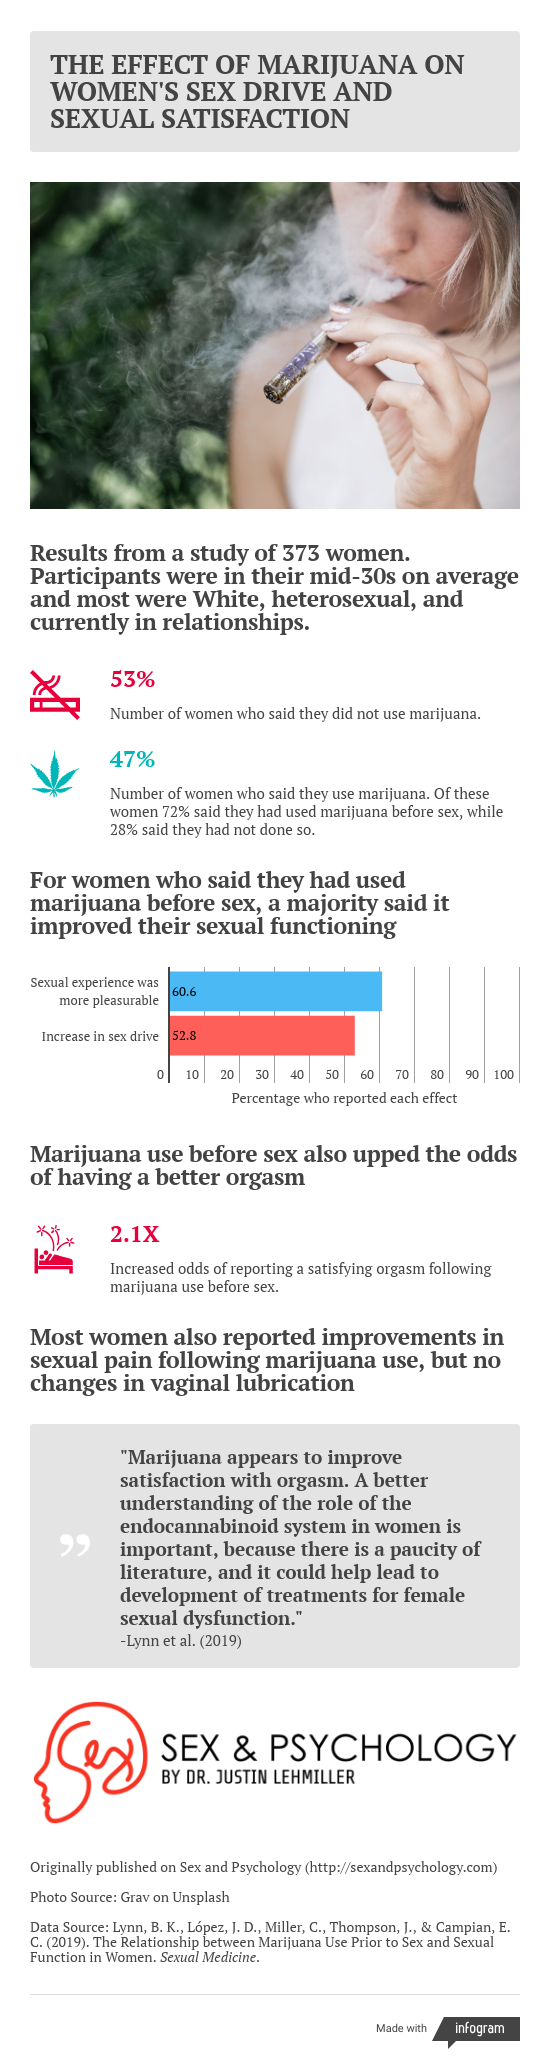 how-marijuana-affects-womens-sexual-function-3.png